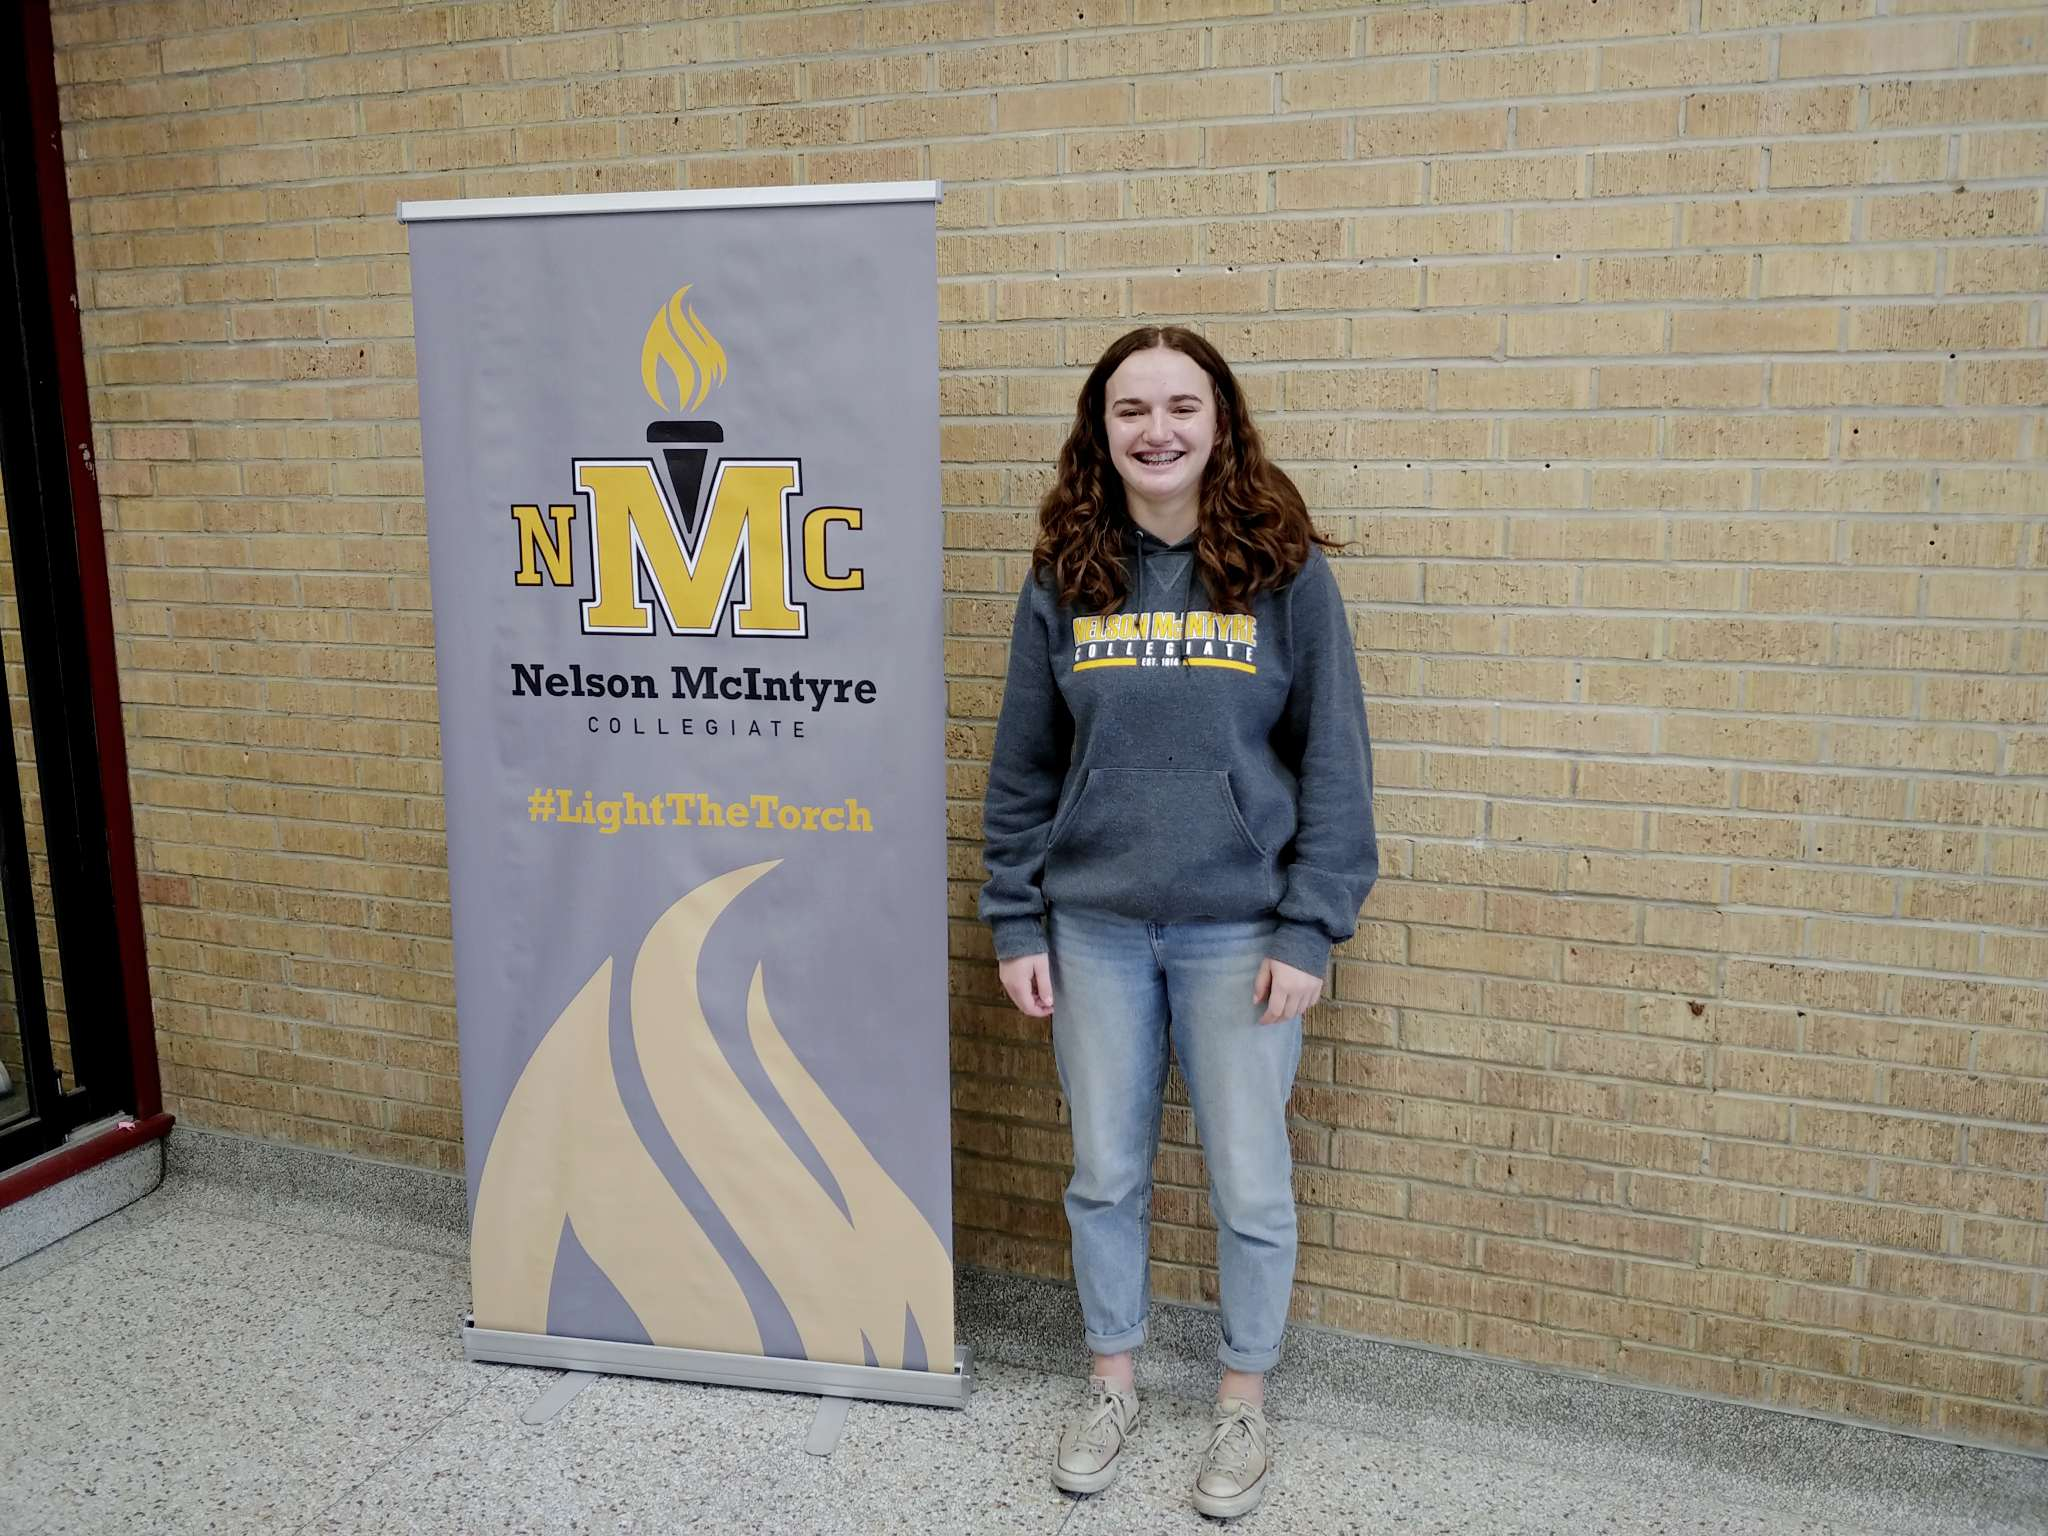 Manhattan Leslie-Toogood, a Grade 12 Nelson McIntyre Collegiate student, has been chosen to receive an $80,000 Schulich Leader Scholarship. This fall, the 18-year-old will attend Dalhousie University, where she will study sciences.